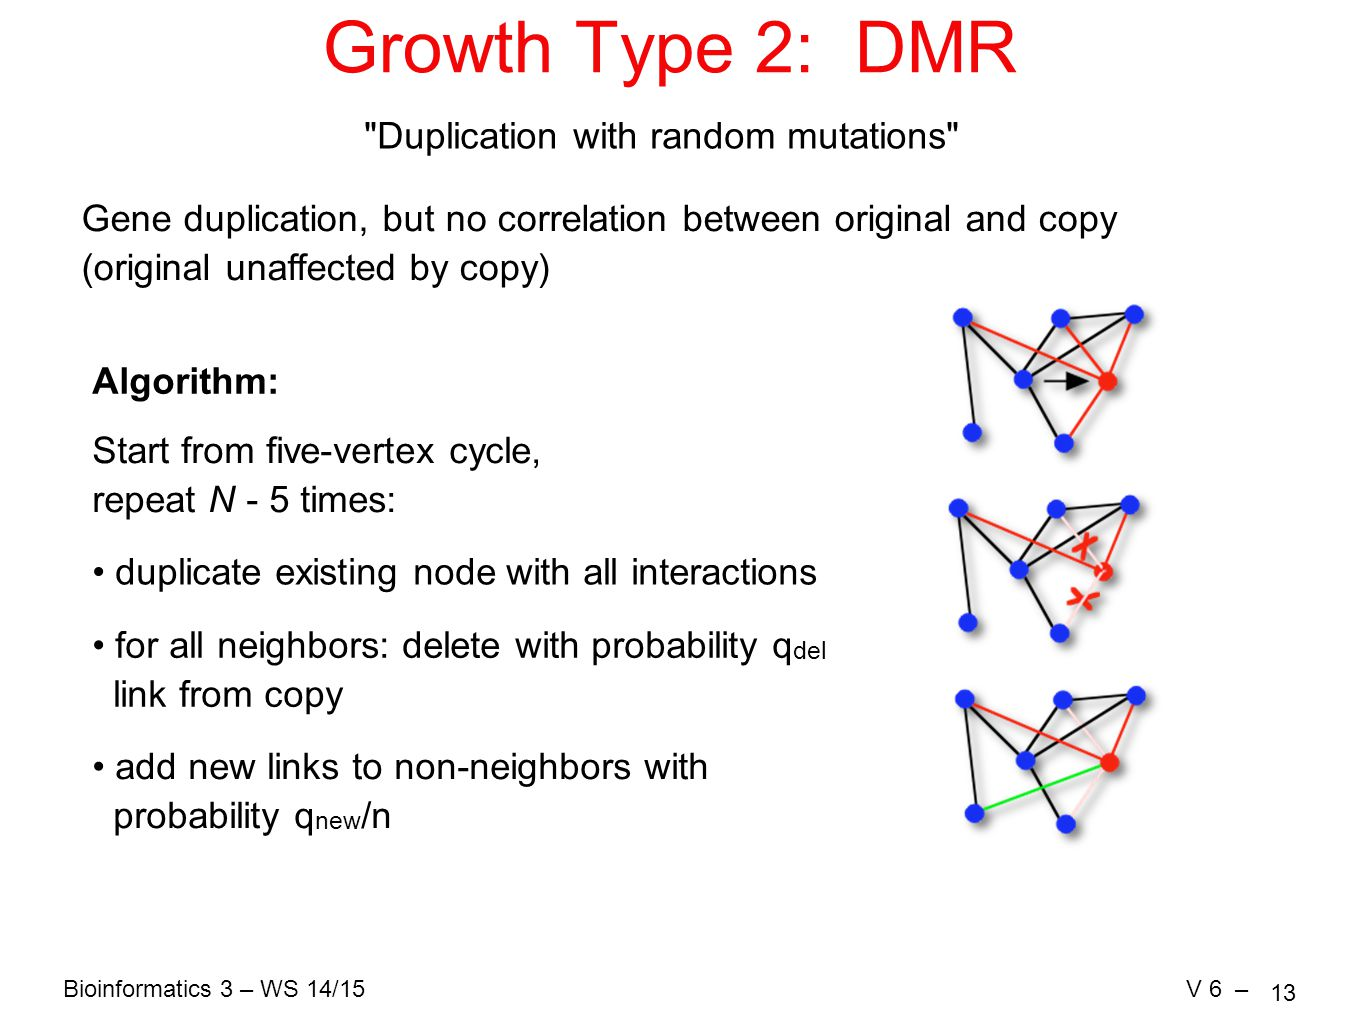 Bioinformatics 3 – WS 14/15V 6 – 13 Growth Type 2: DMR Duplication with random mutations Gene duplication, but no correlation between original and copy (original unaffected by copy) Algorithm: duplicate existing node with all interactions for all neighbors: delete with probability q del link from copy Start from five-vertex cycle, repeat N - 5 times: add new links to non-neighbors with probability q new /n